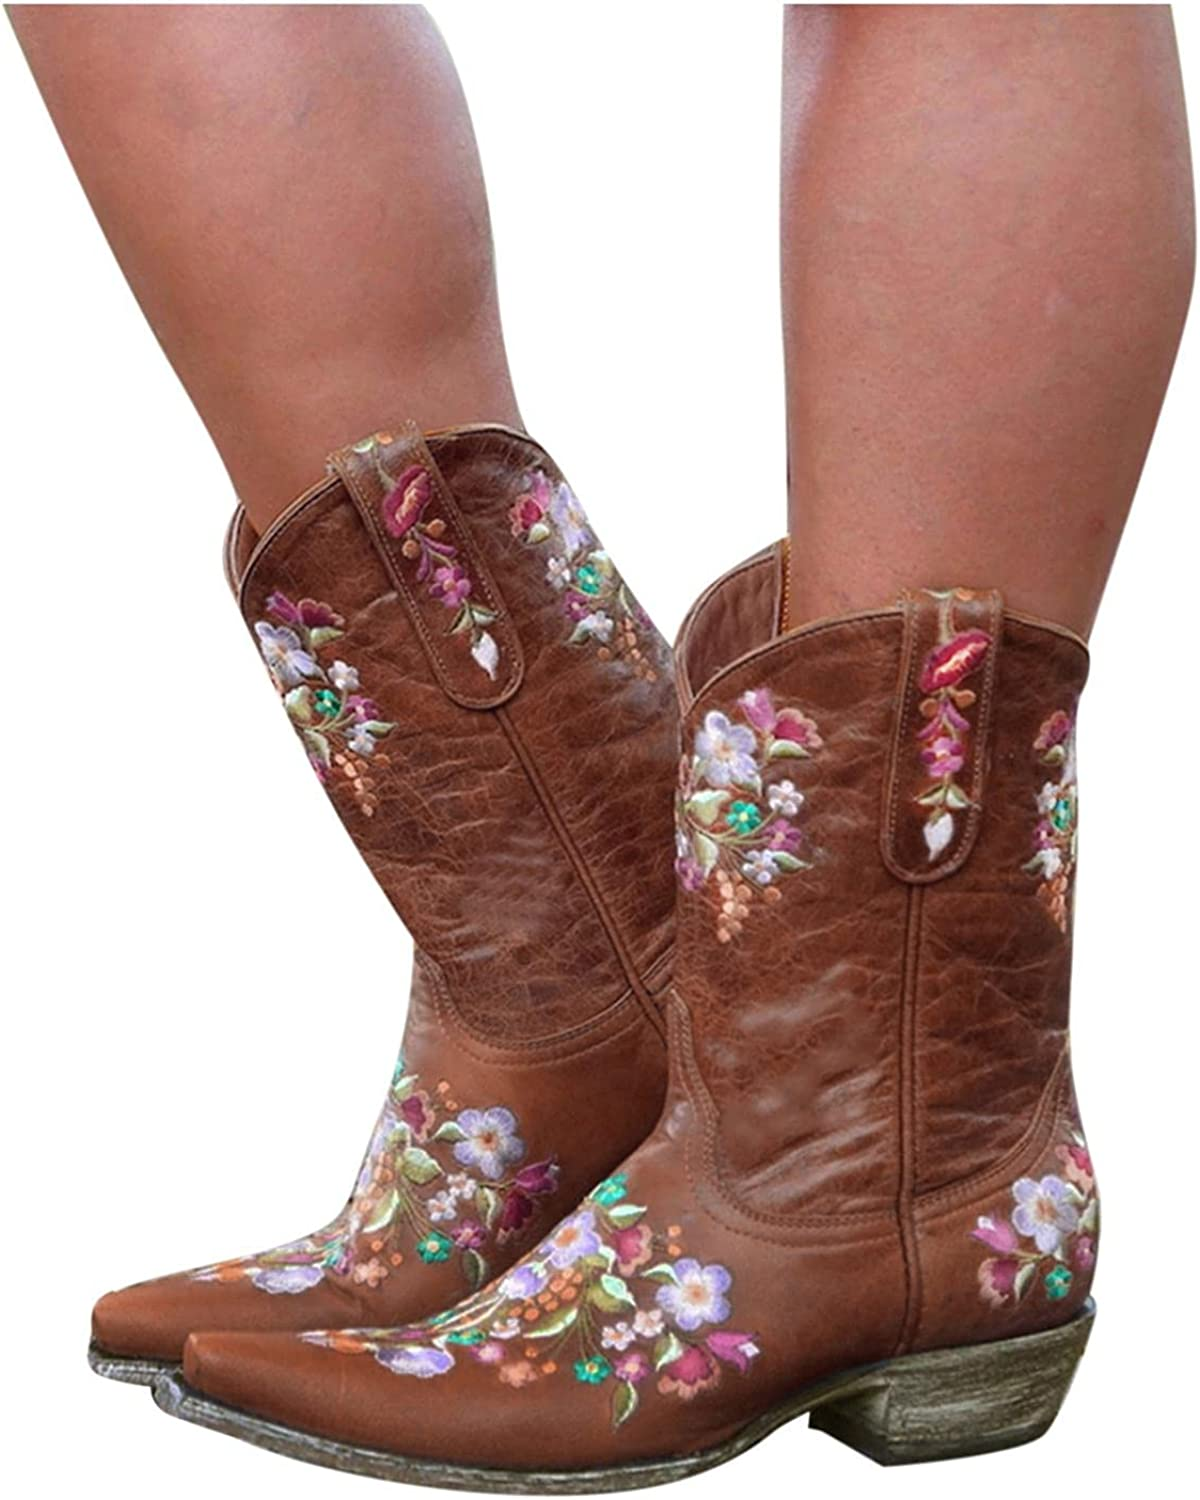 Hbeylia Vintage Ethnic Cowboys Boots For Women Boho Retro Flower Embroidered Pointed Toe Leather Western Cowgirls Boots Bohemian Chunky Mid Heels Wide Mid Calf Booties For Ladies Dress